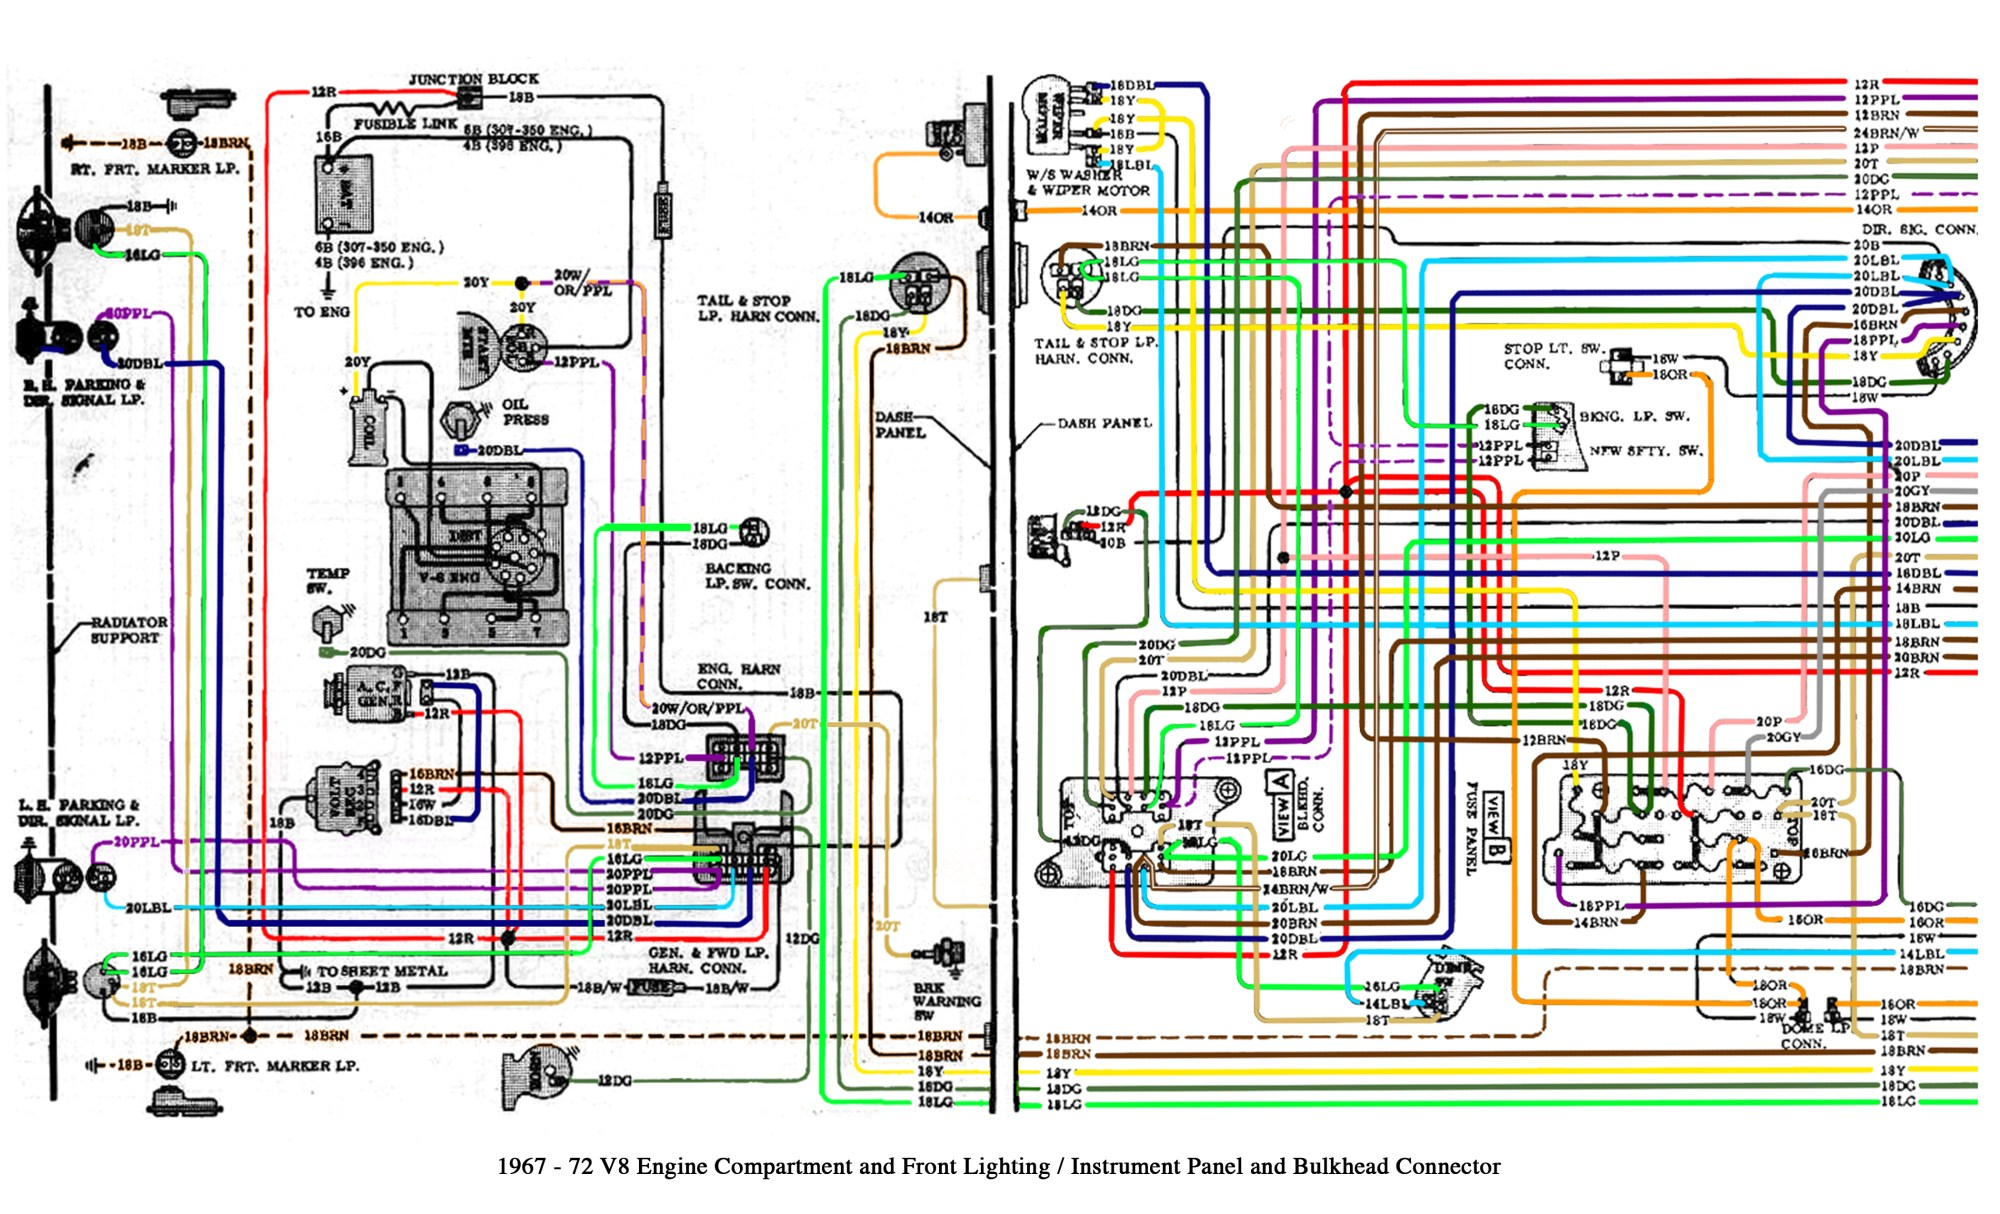 hight resolution of 76 chevy truck wiring diagram just wiring data wiring on a 1989 1500 chevy truck 1977